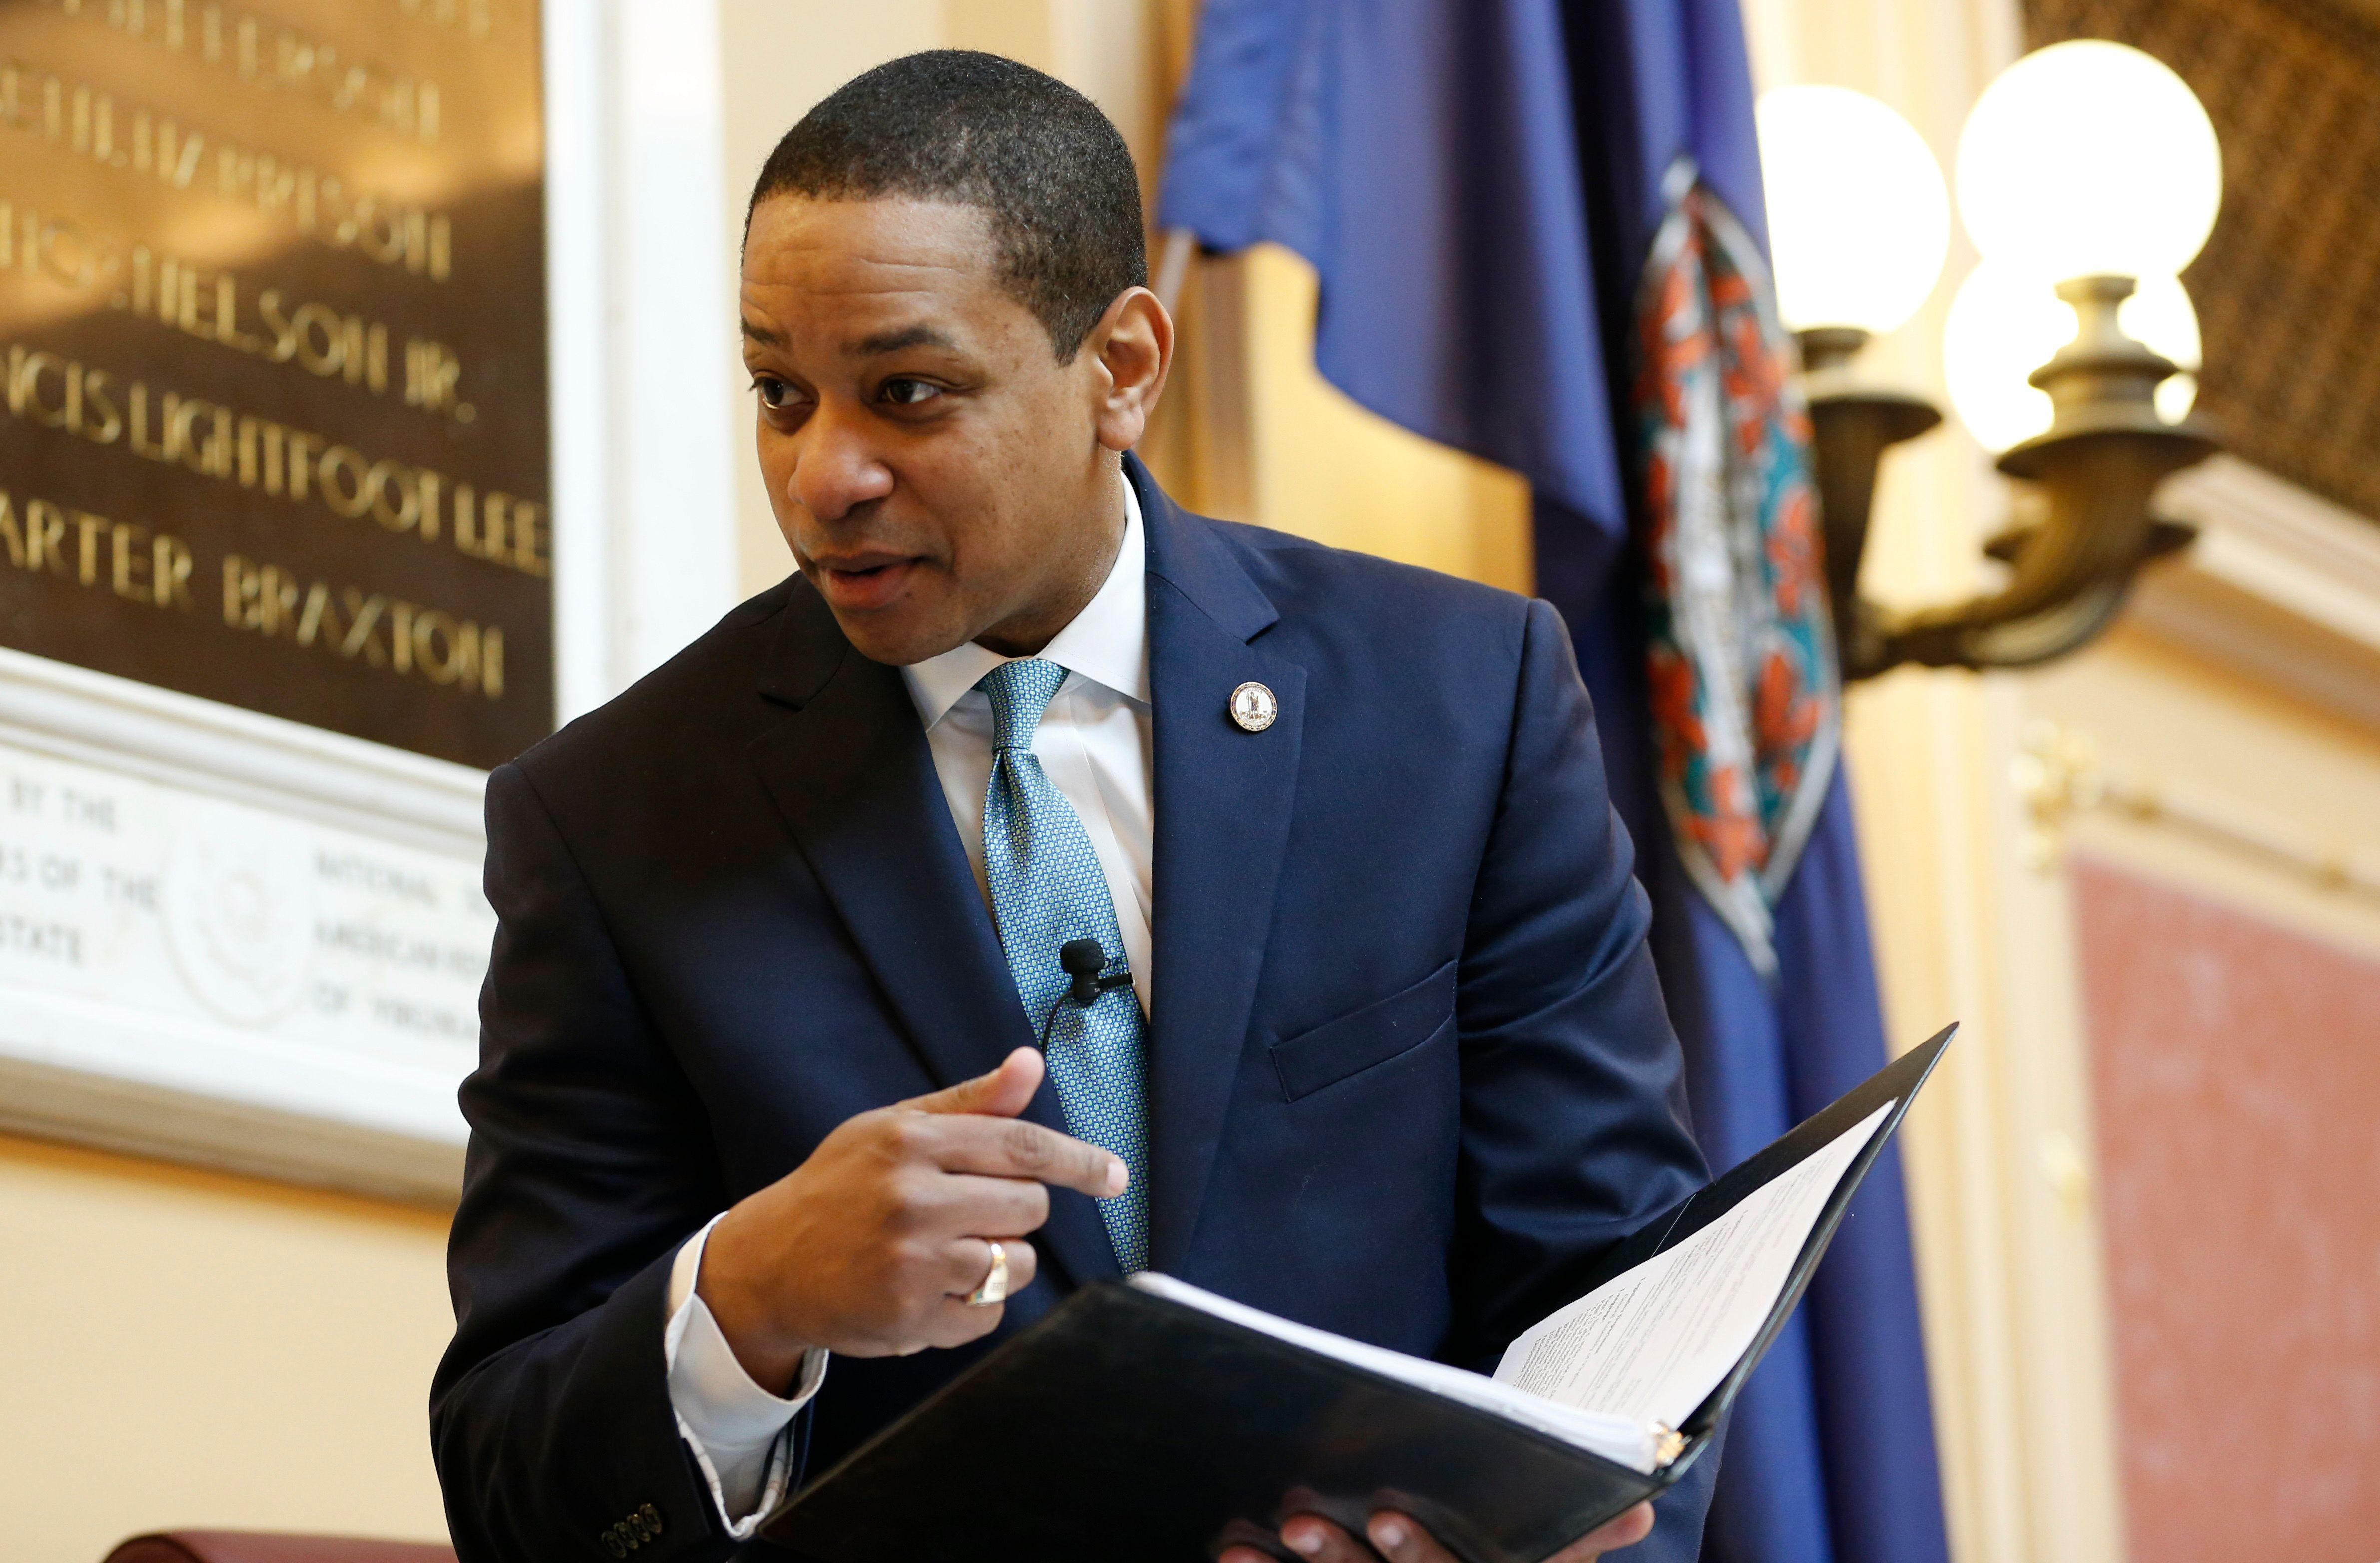 Virginia Lt. Gov. Justin Fairfax Accused Of Sexual Assault By Second